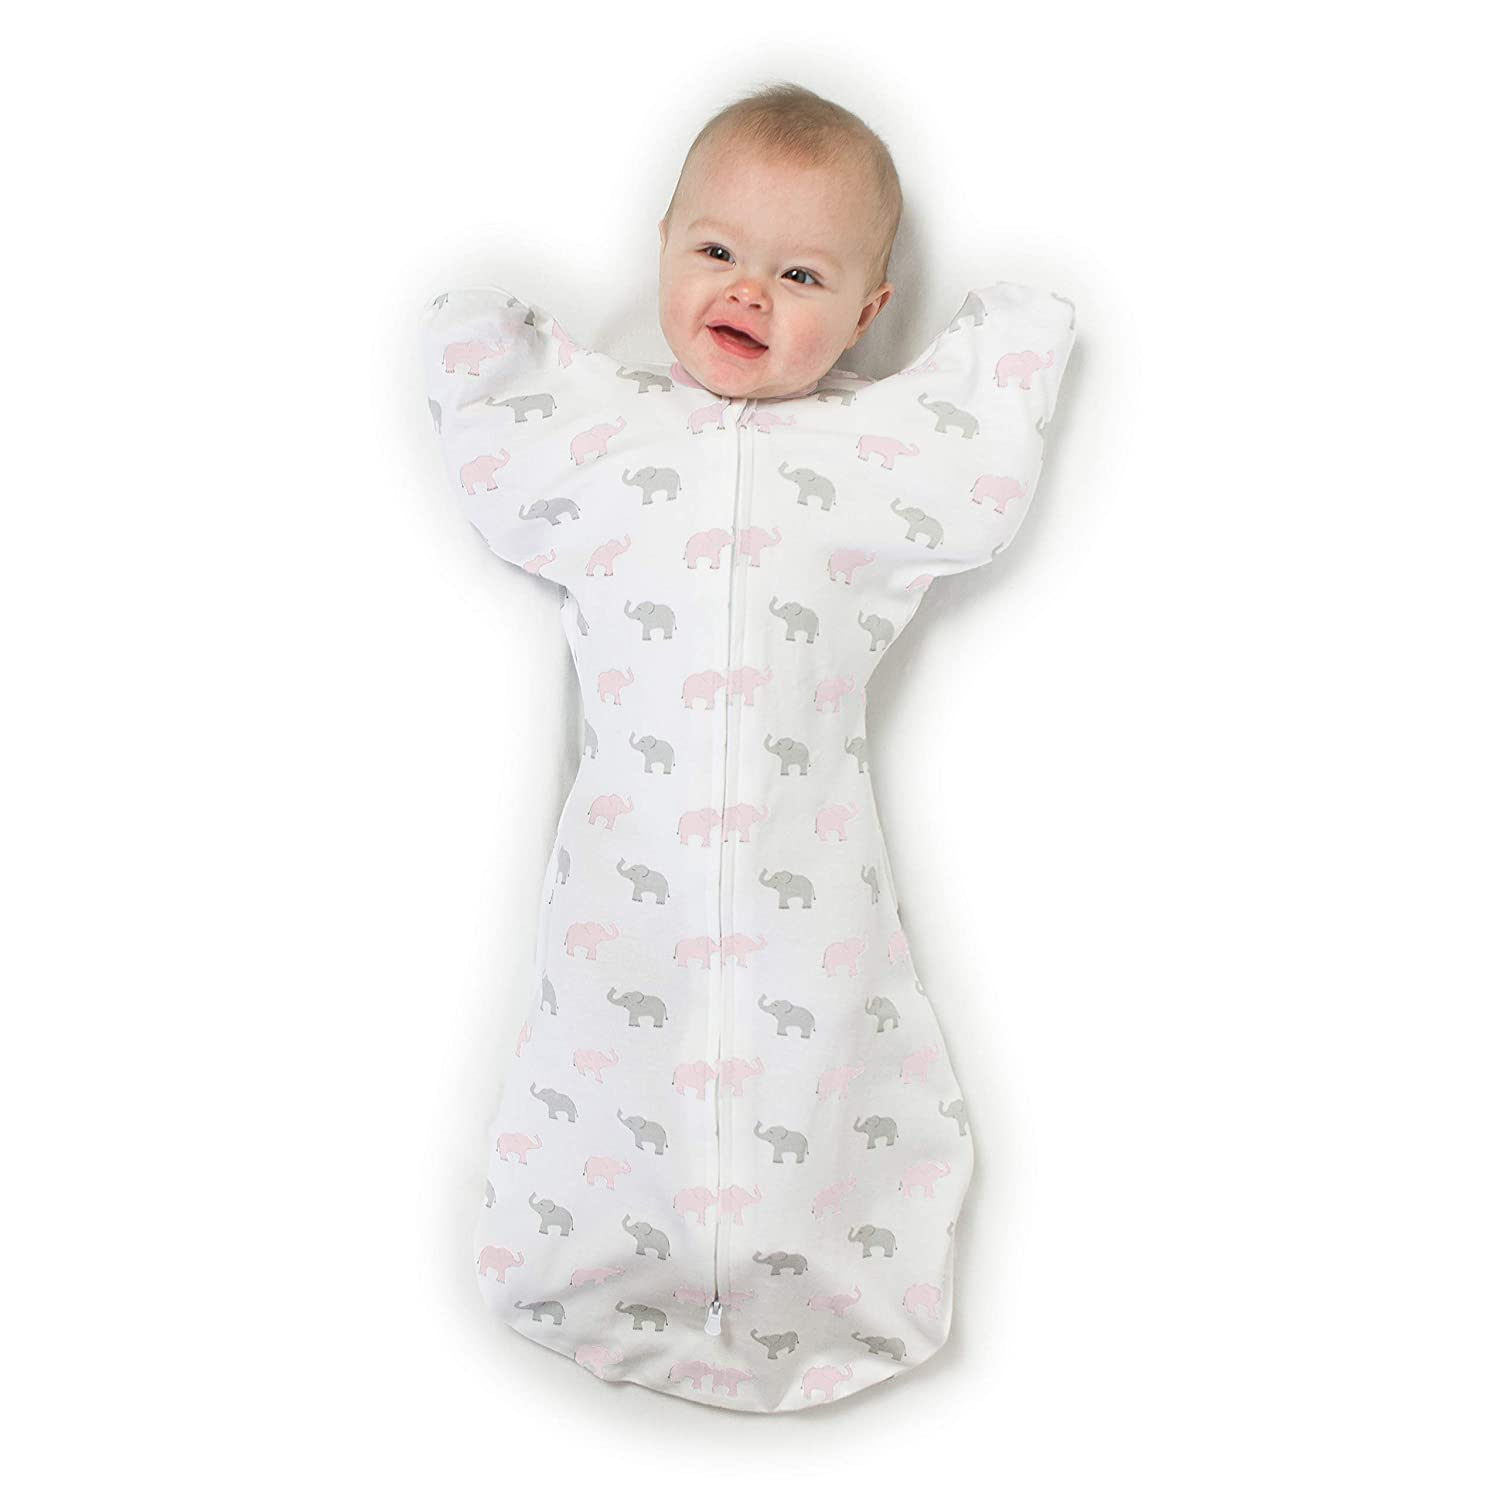 Amazing Baby Transitional Swaddle Sack with Arms Up Half-Length Sleeves and Mitten Cuffs, Tiny Elephants, Pink, Medium, 3-6 Months (Parents' Picks Award Winner, Easy Transition with Better Sleep)